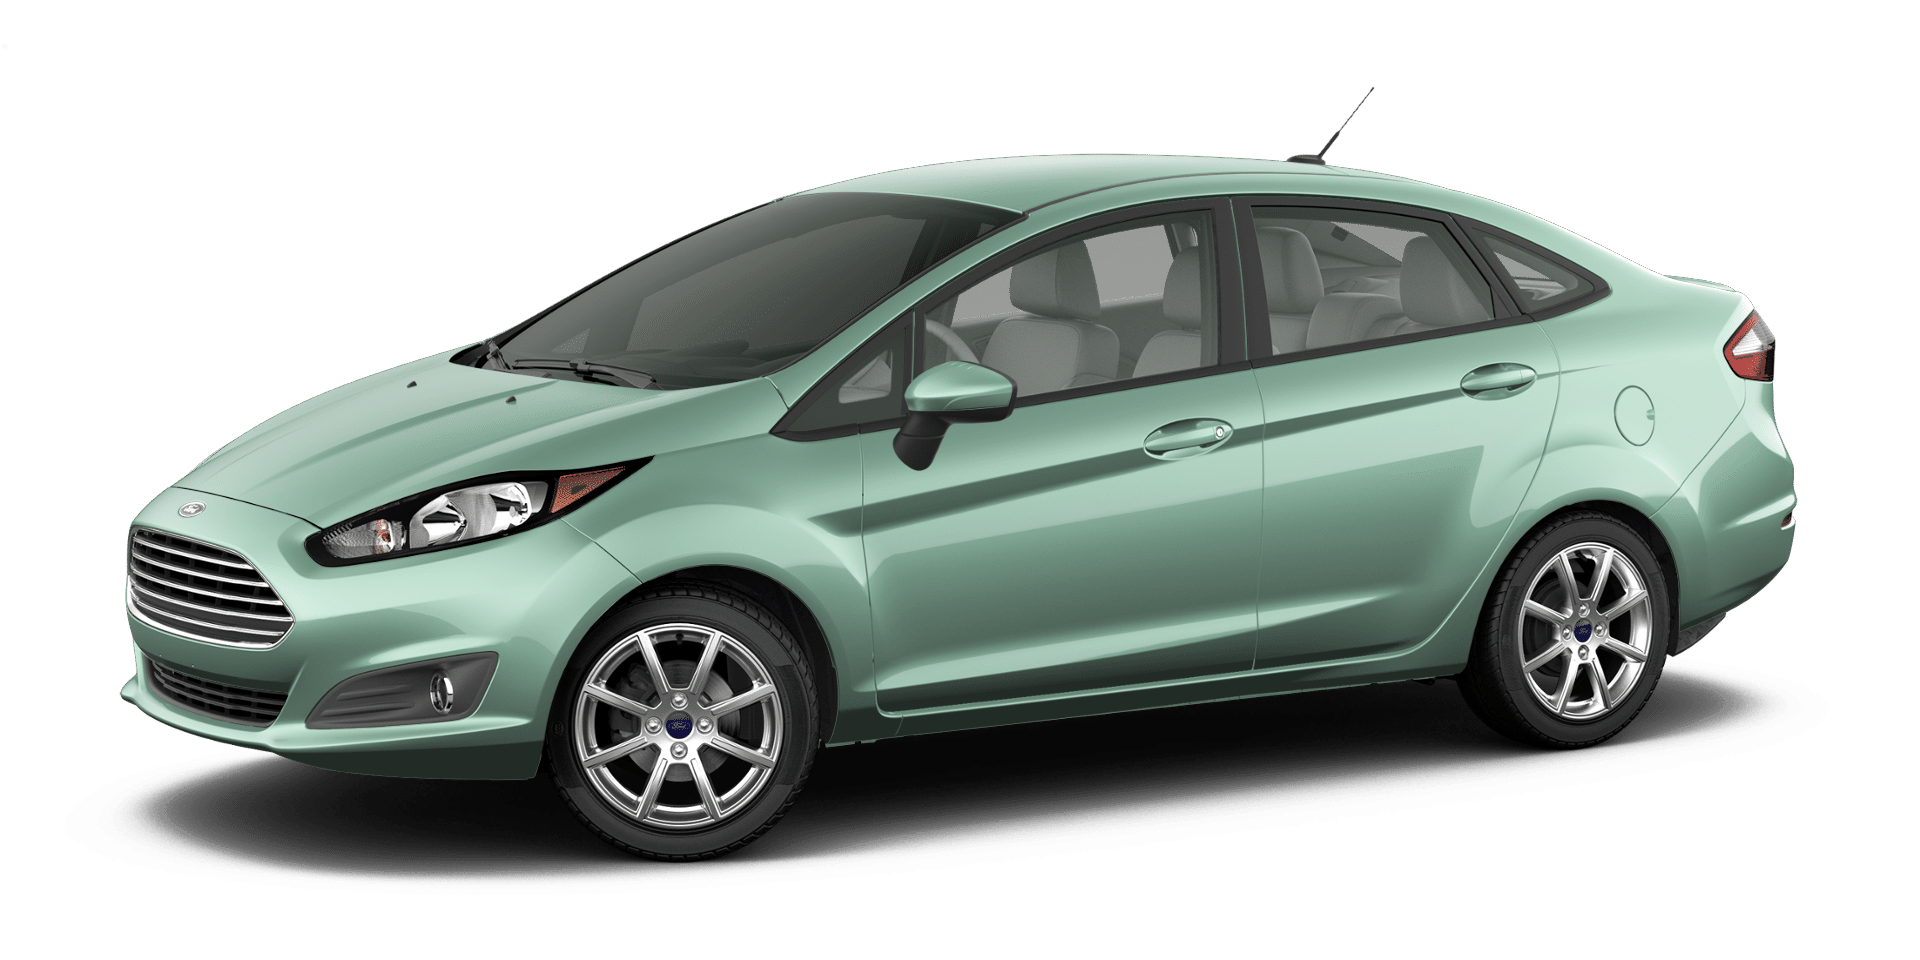 2017 Ford Fiesta - Search Inventory